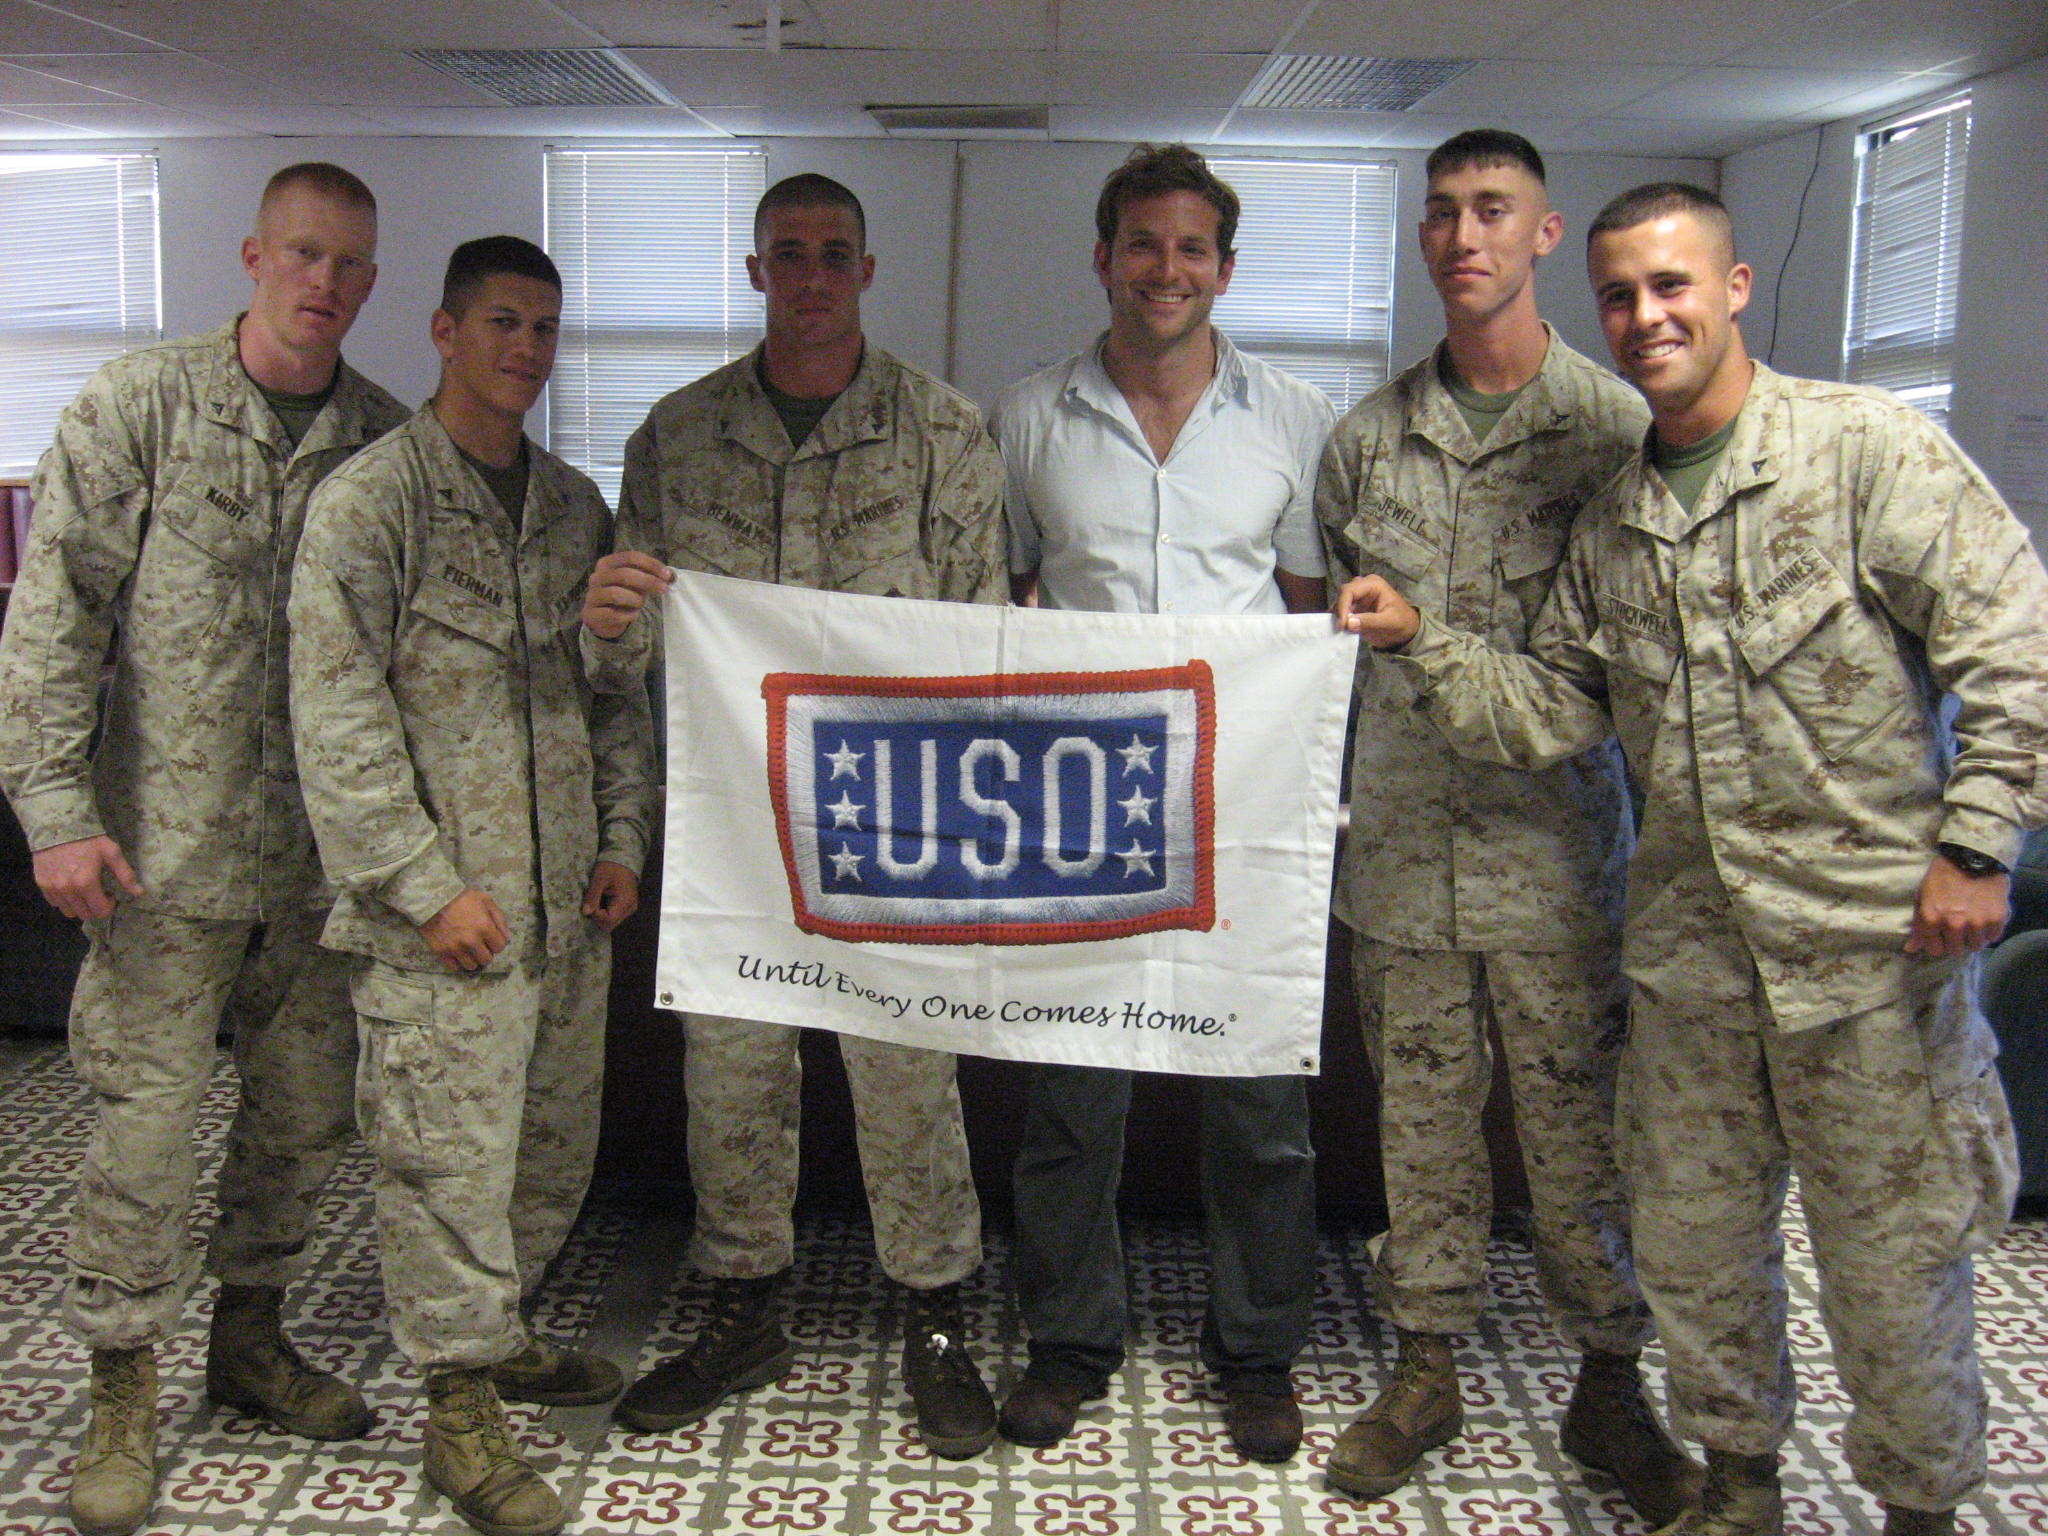 Actor Bradley Cooper takes a moment to pose with service members stationed in Guantanamo Bay, Cuba, during a week-long USO tour in 2008.  Cooper was in the region on his first tour to show support to U.S. troops and bring them a touch of home.